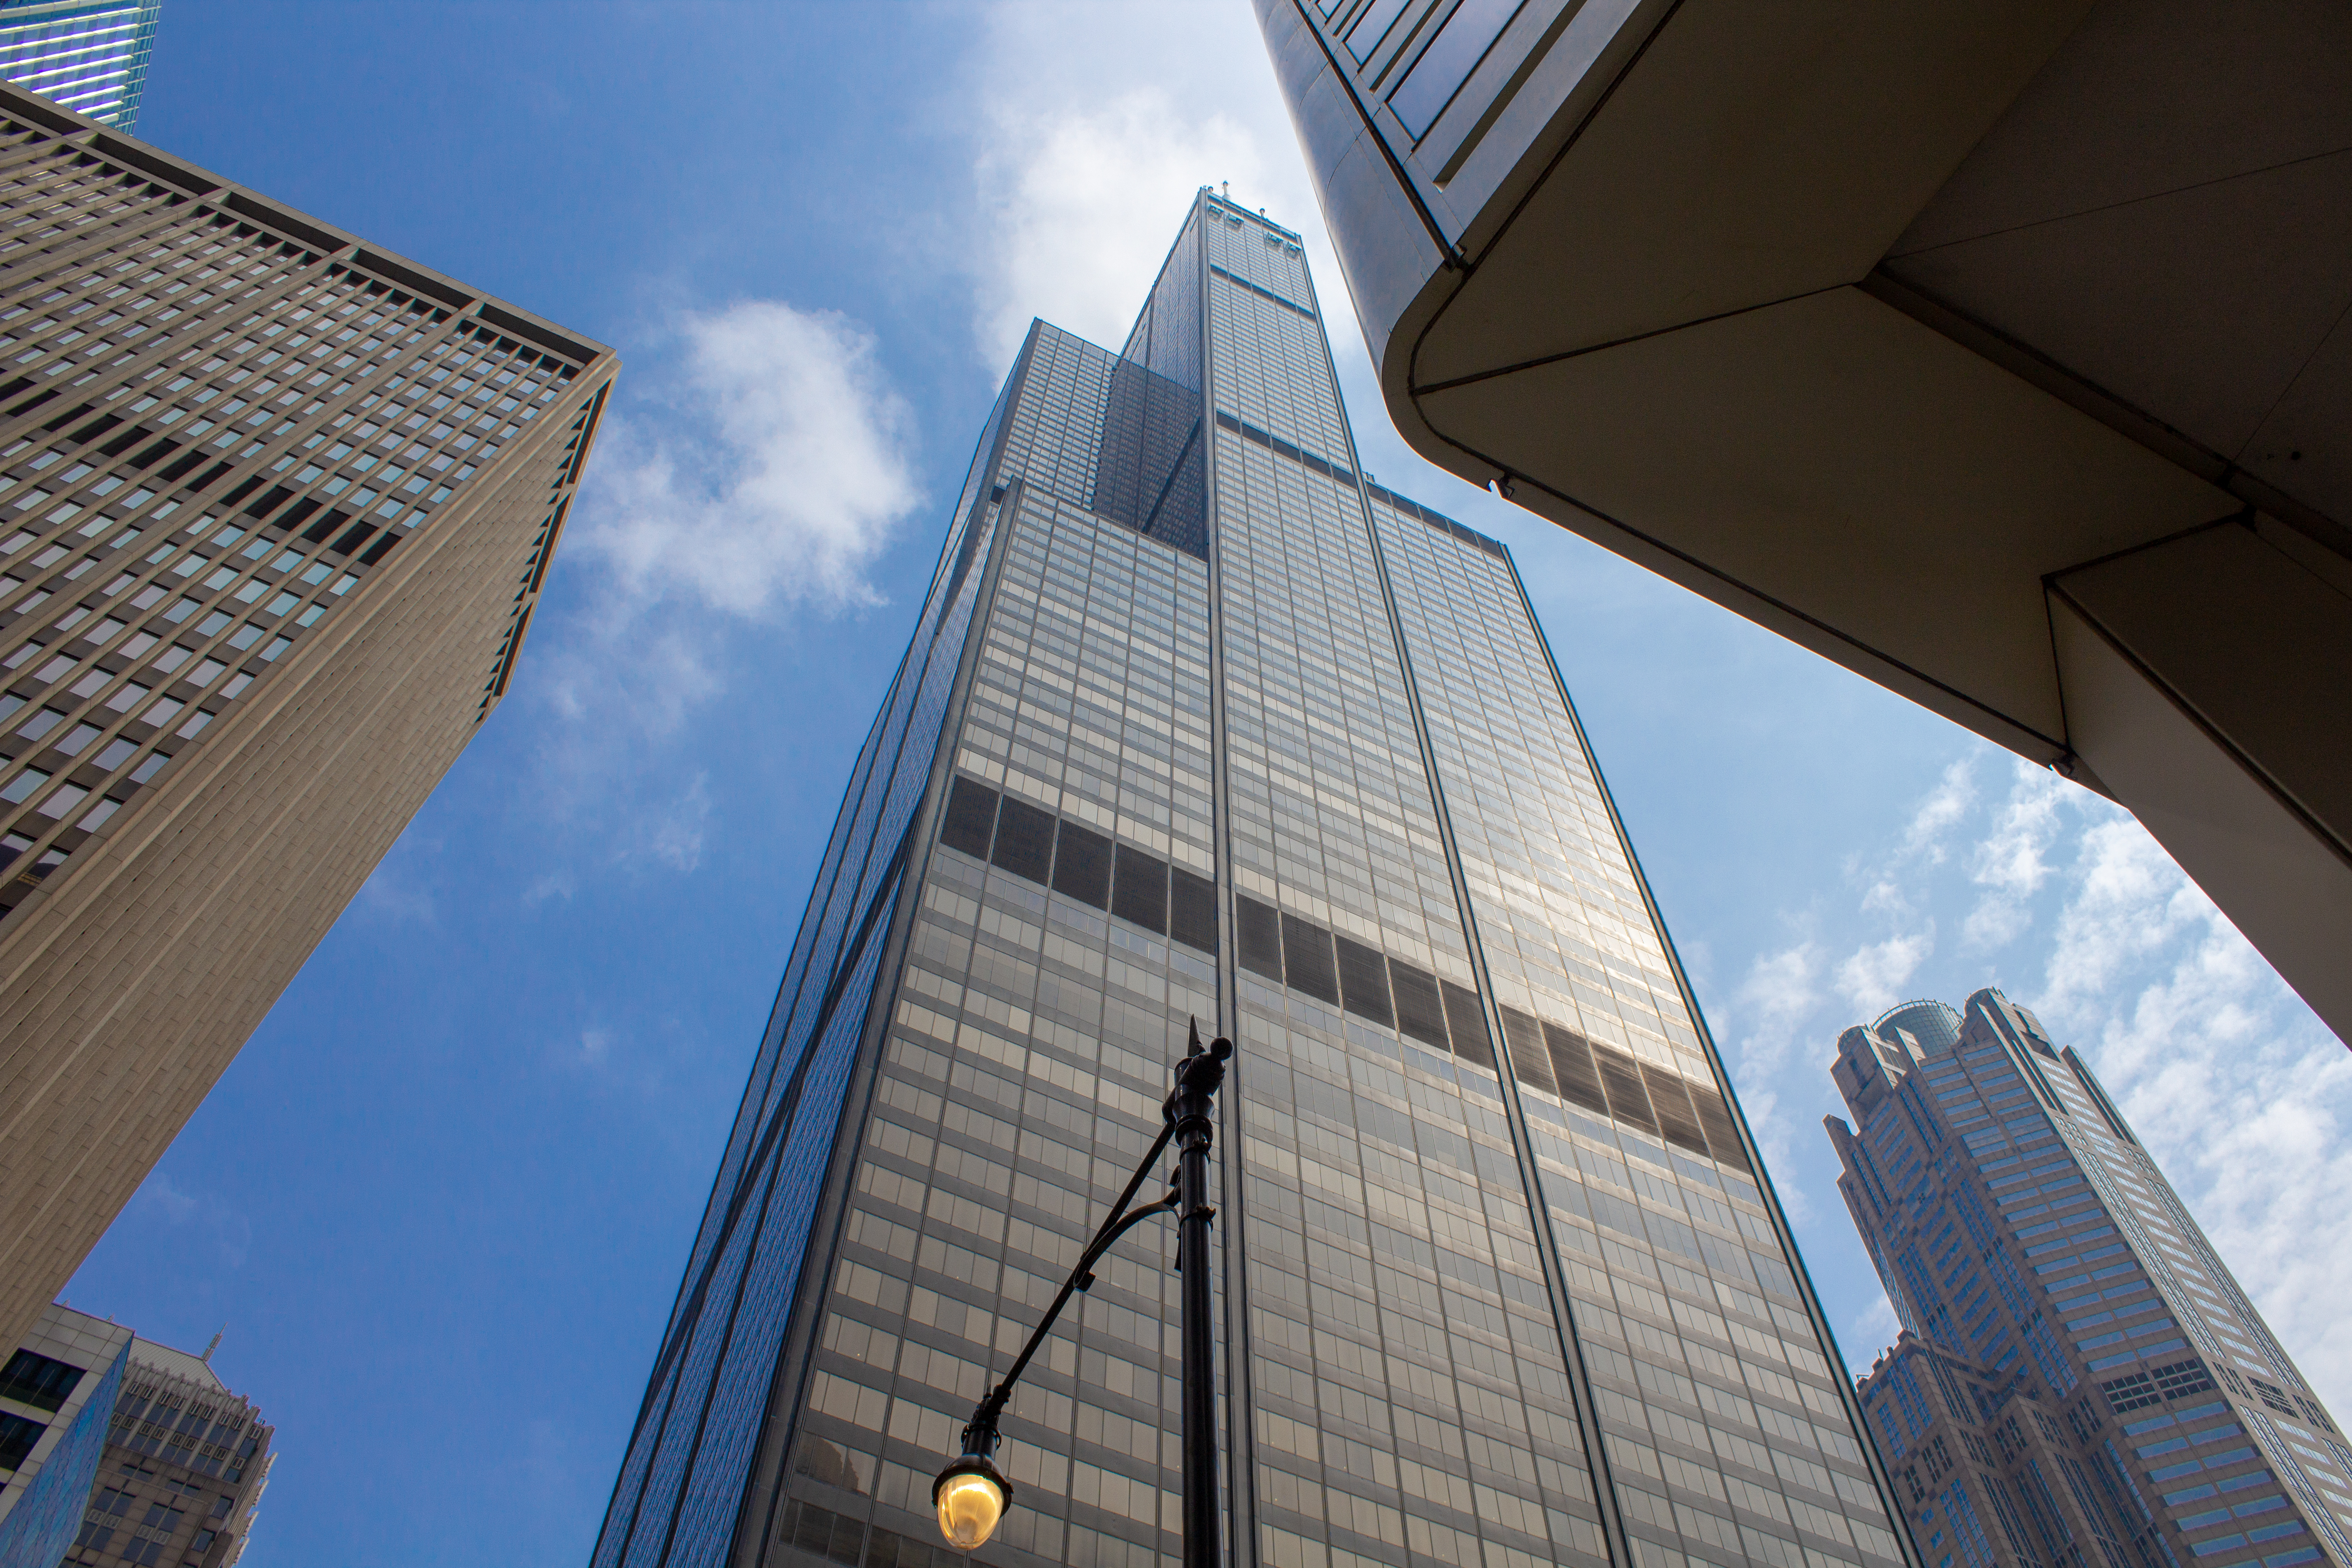 A street-level view of a tall, black skyscraper with offset setbacks that tapers under a blue and cloudy sky.